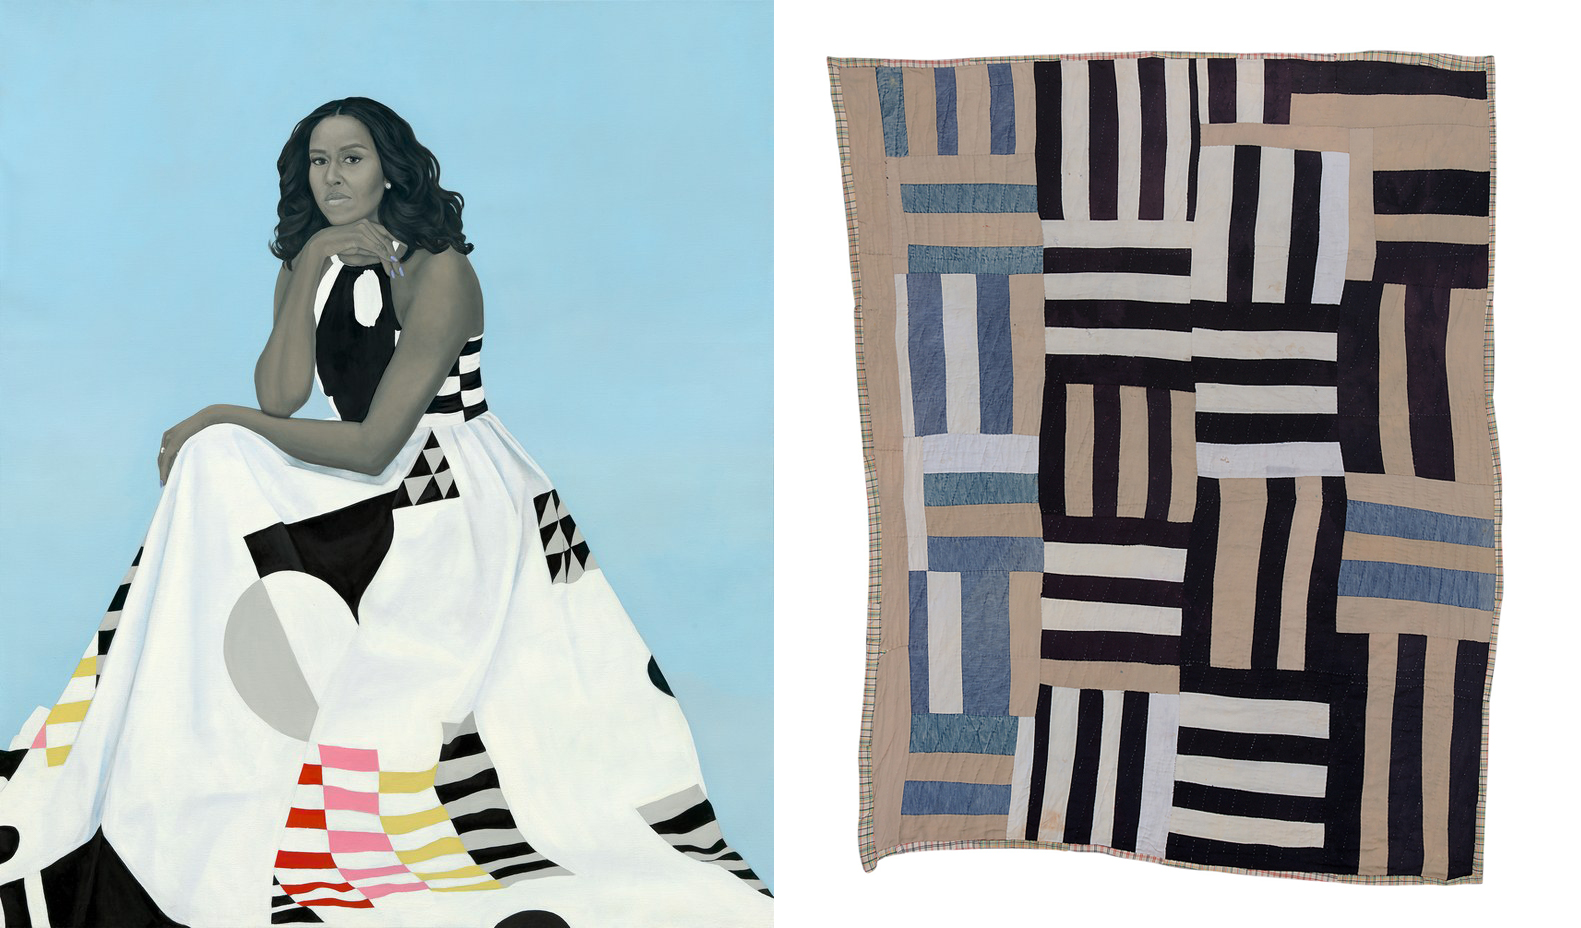 Michelle Obama portrait and quilt by Loretta Pettway